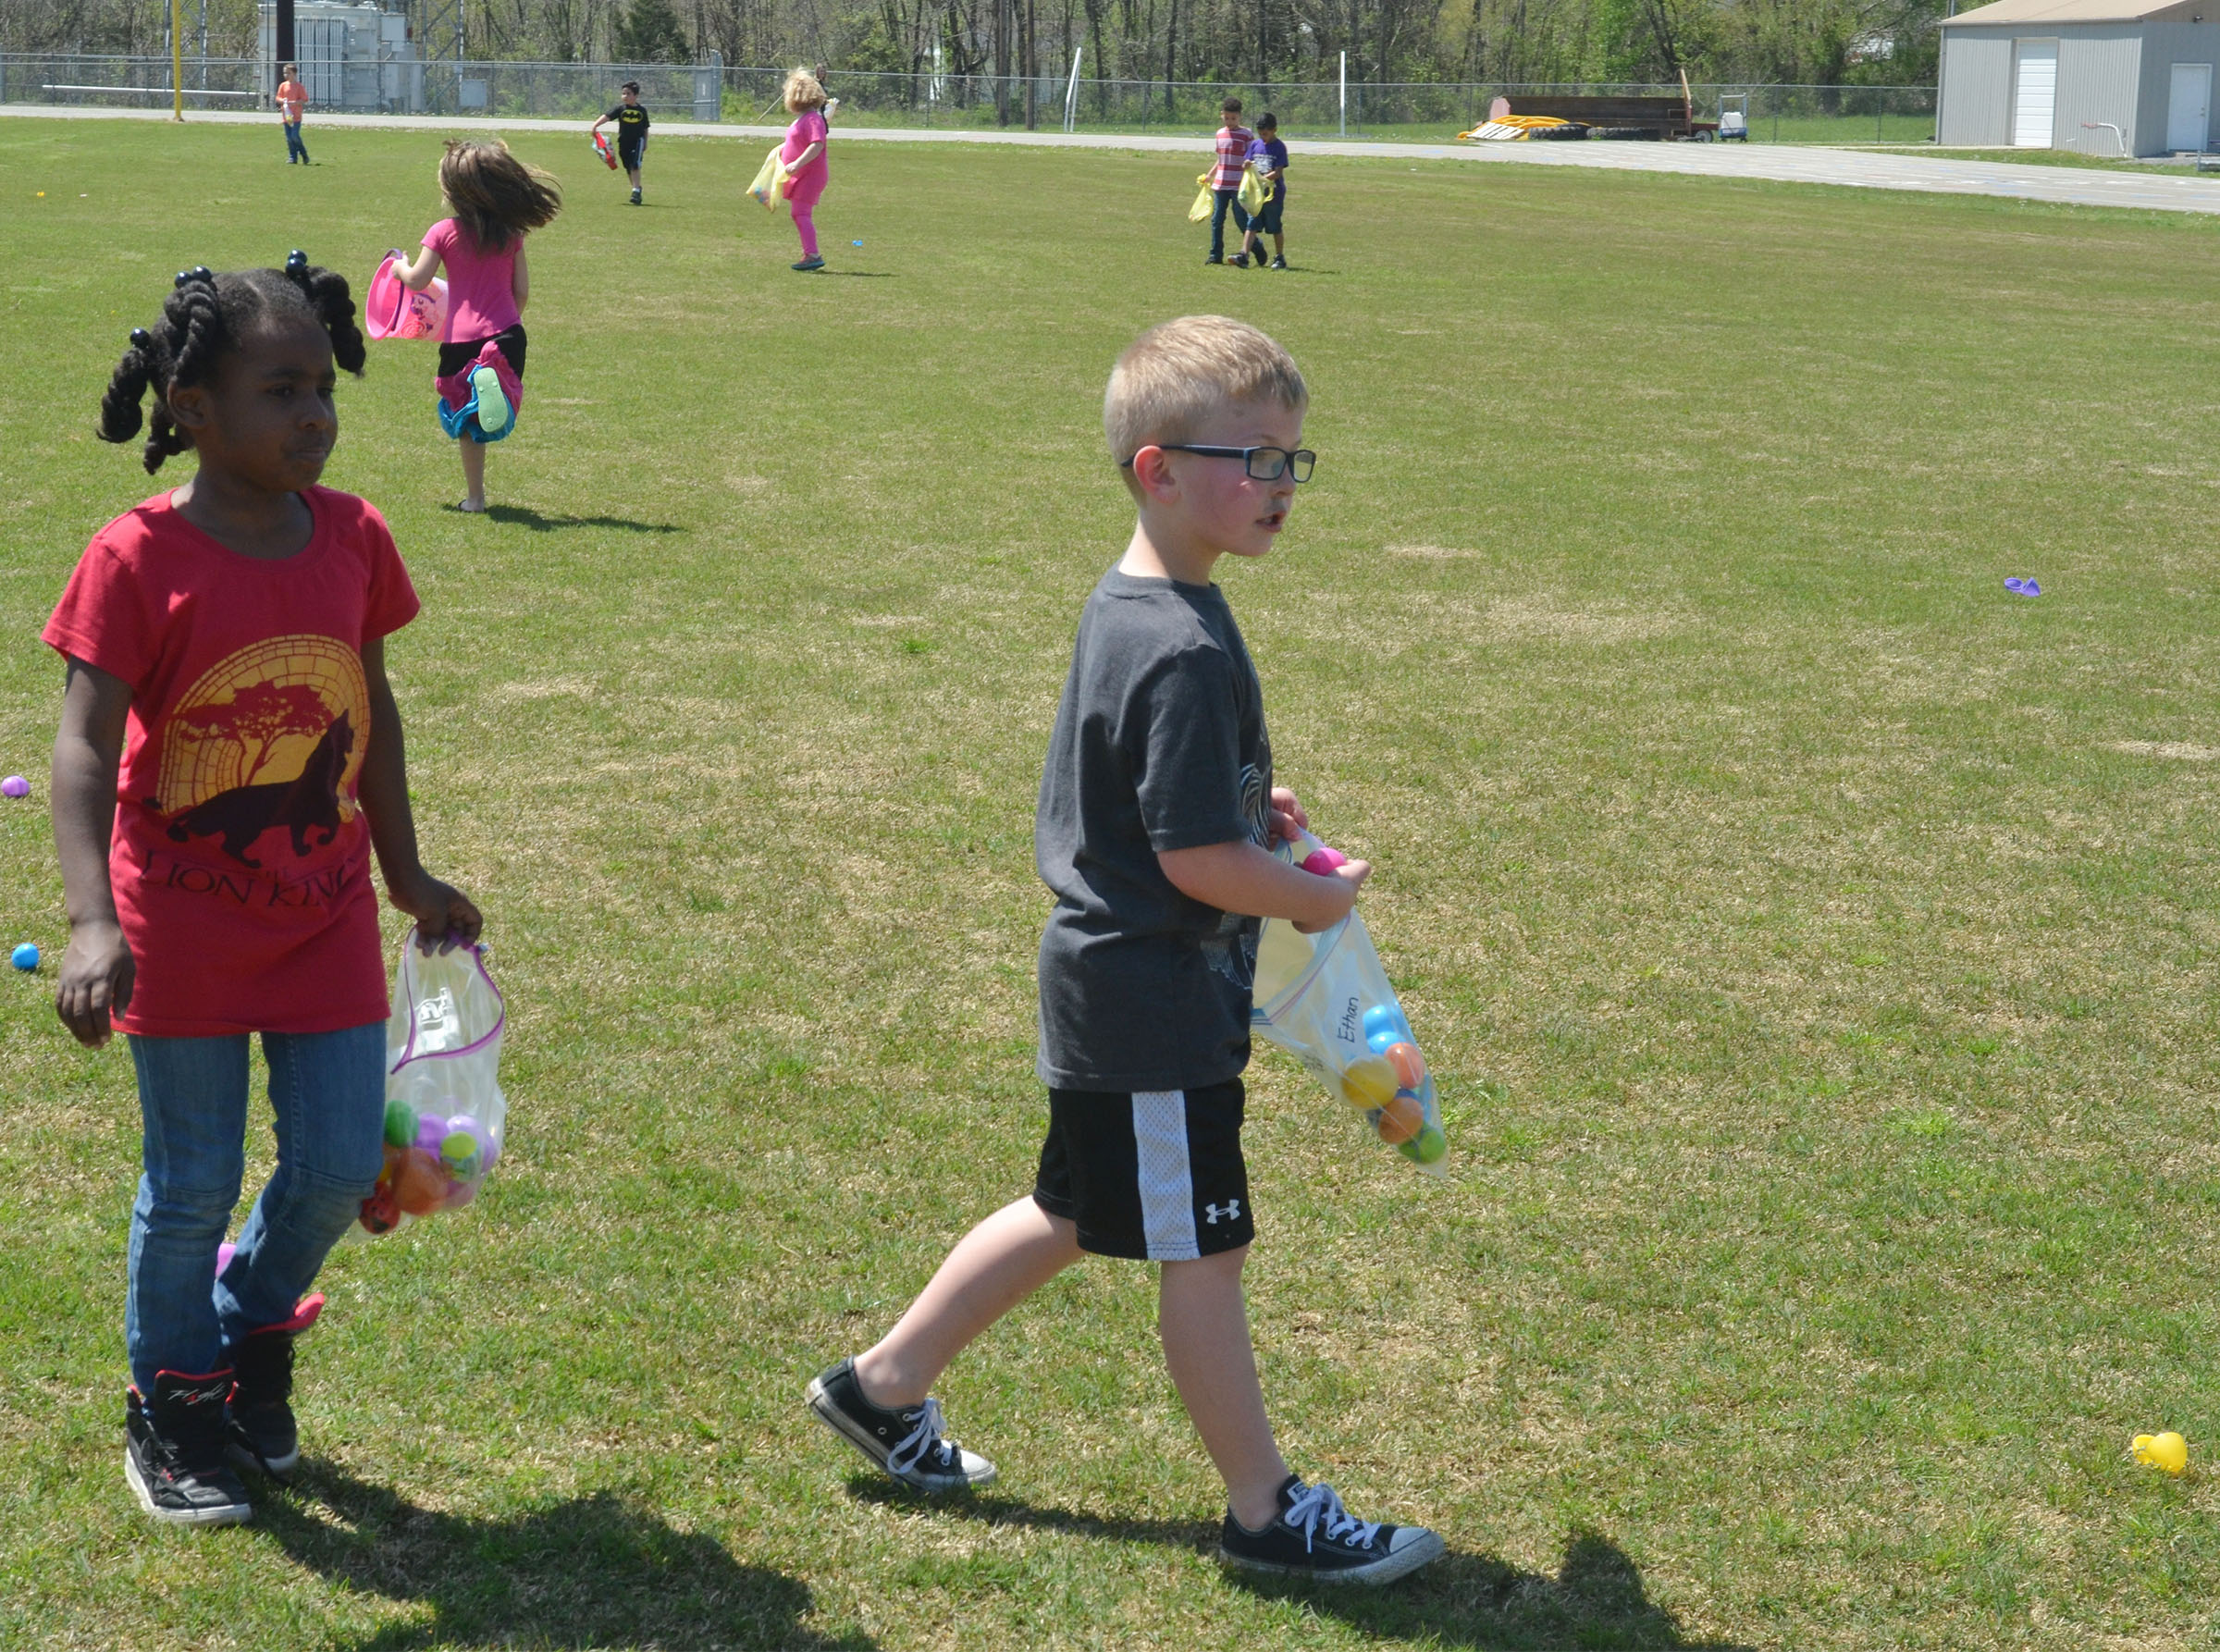 CES first-graders Destini Gholston, at left, and Ethan Bailey search for Easter eggs.